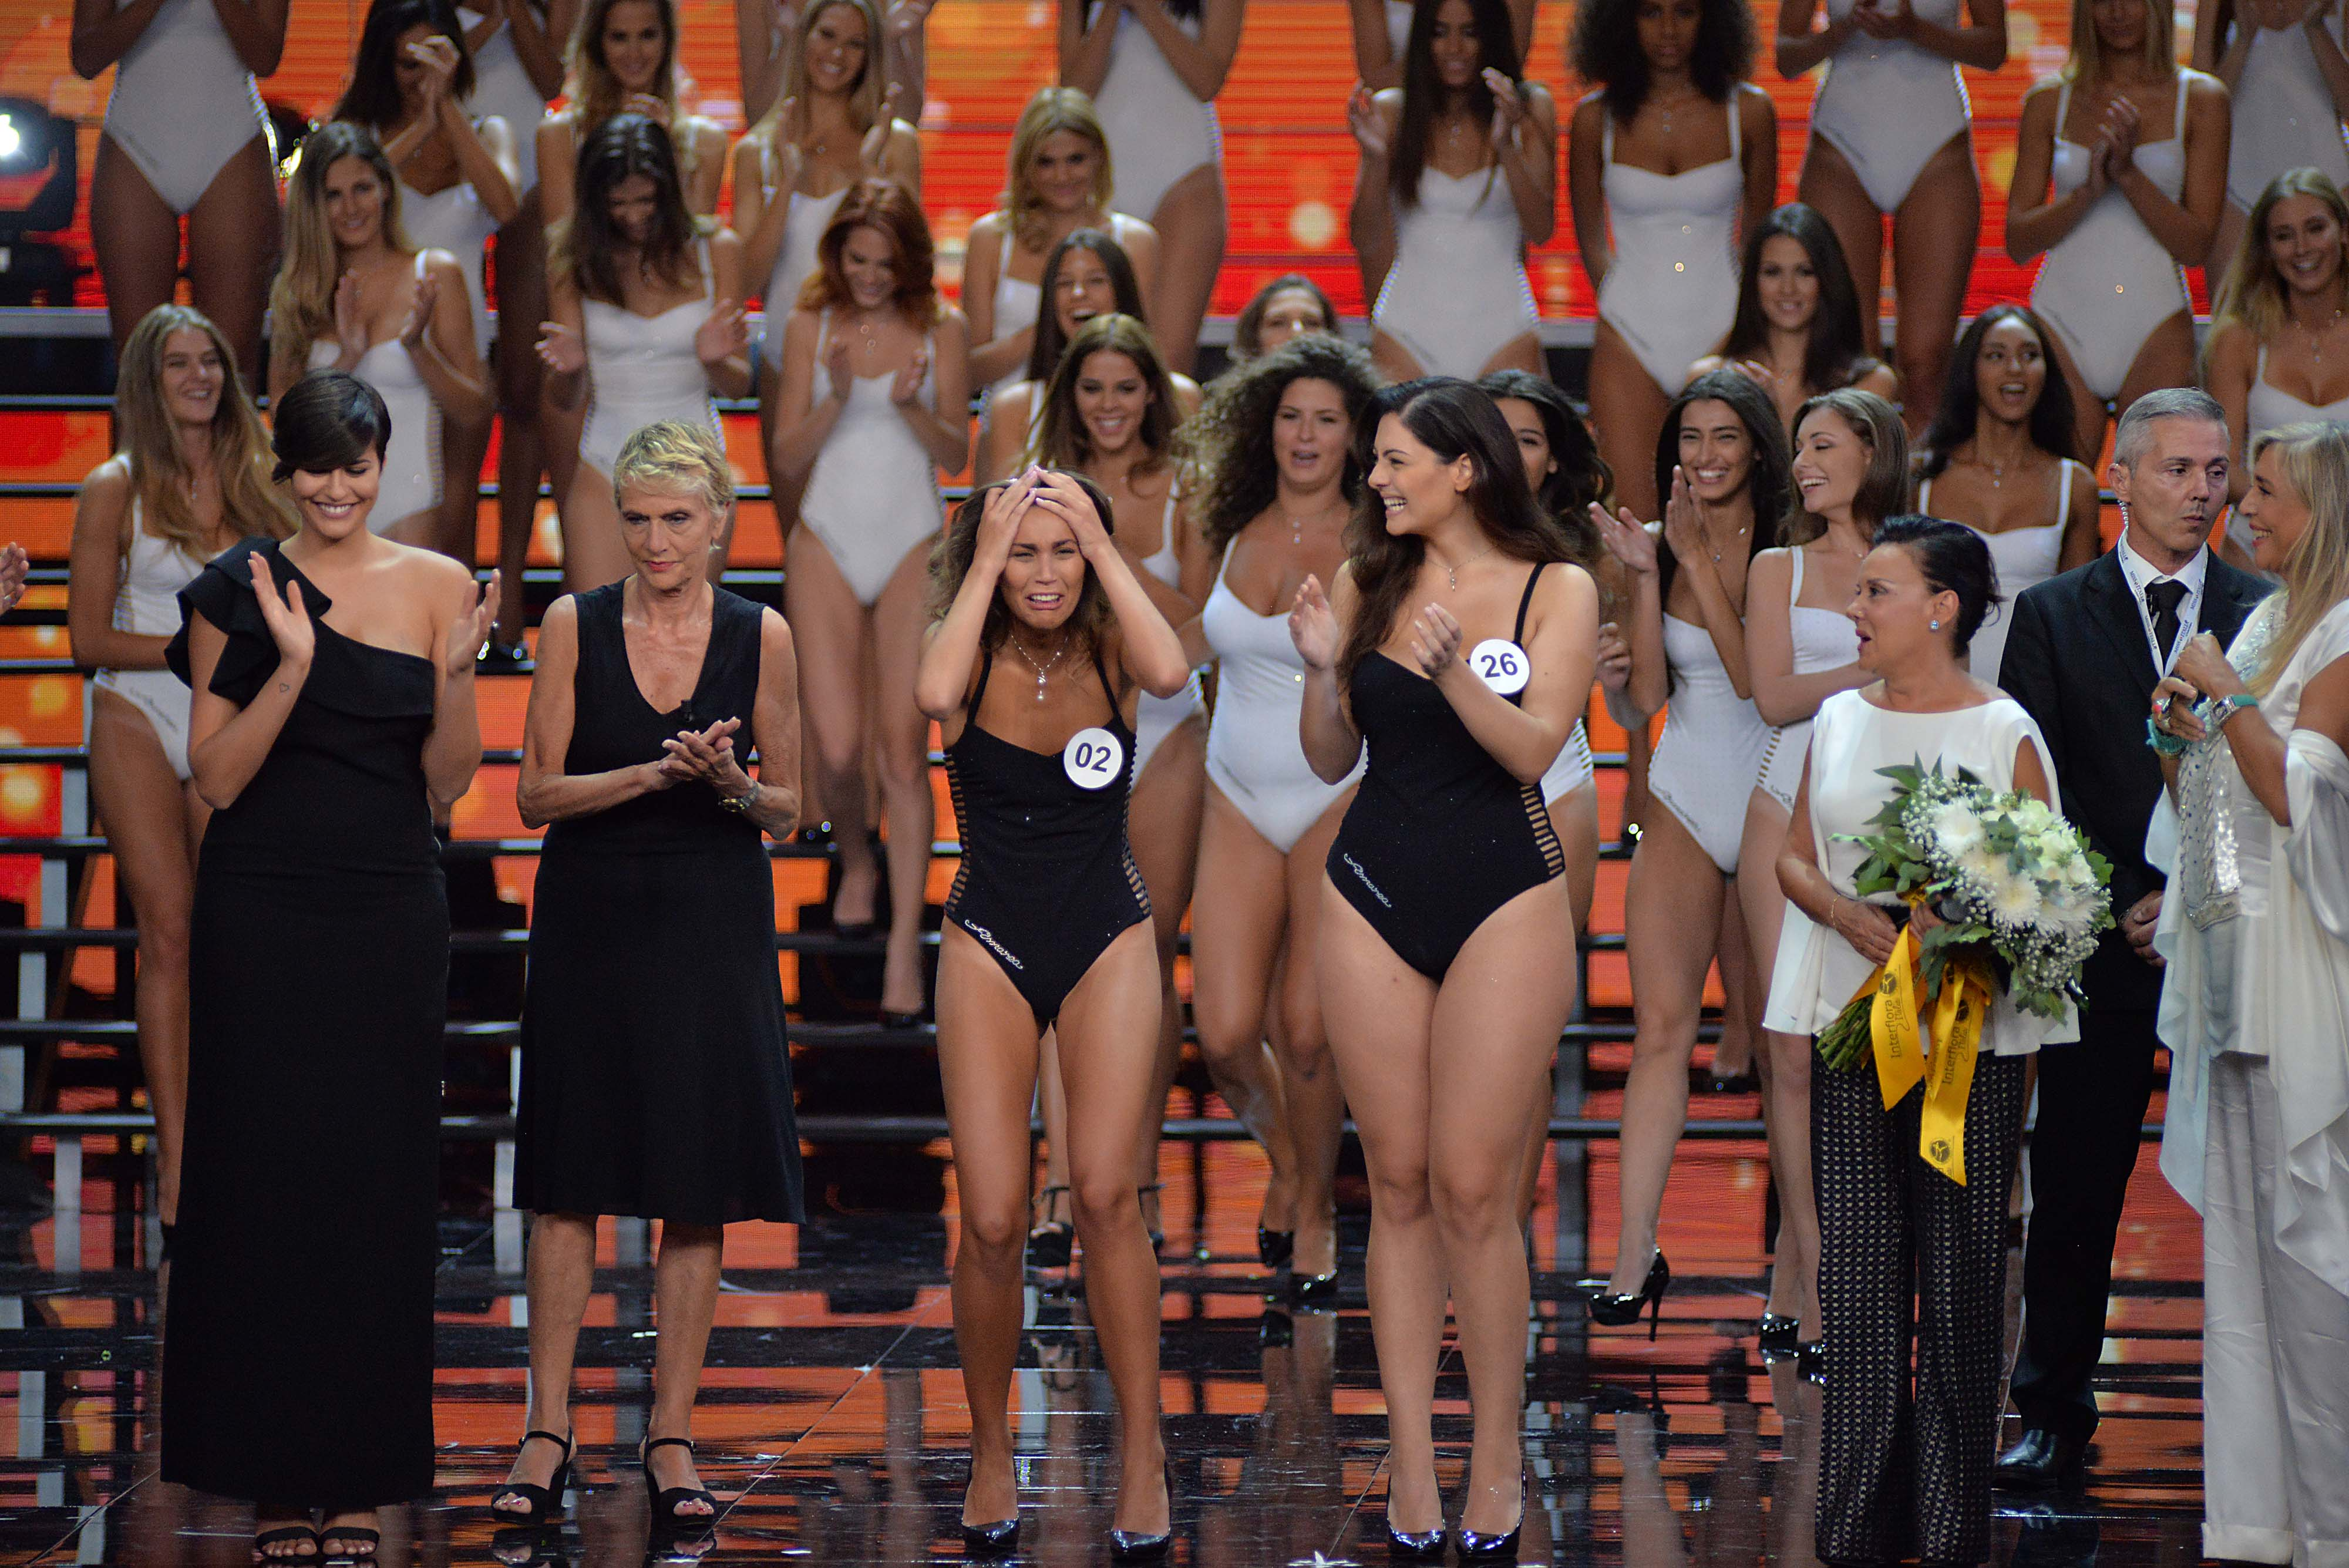 Che vergogna la «quota cicciottella» a Miss Italia